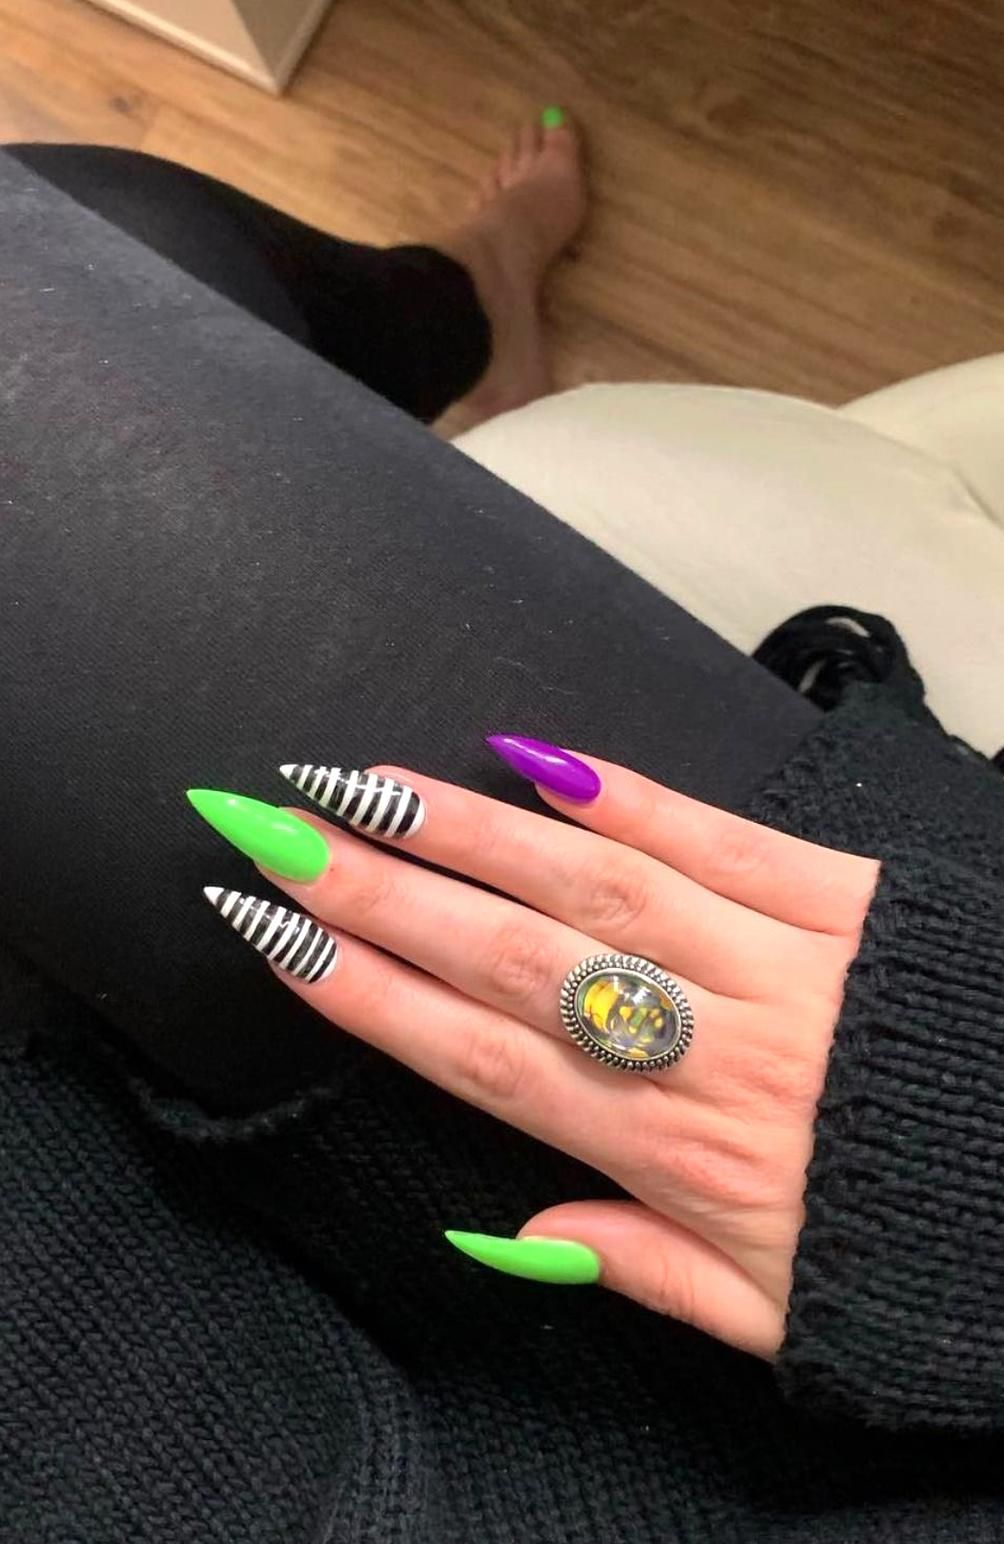 Pin By Audrea Emmons On Nails In 2020 Turquoise Nails Halloween Nail Designs Halloween Nail Art